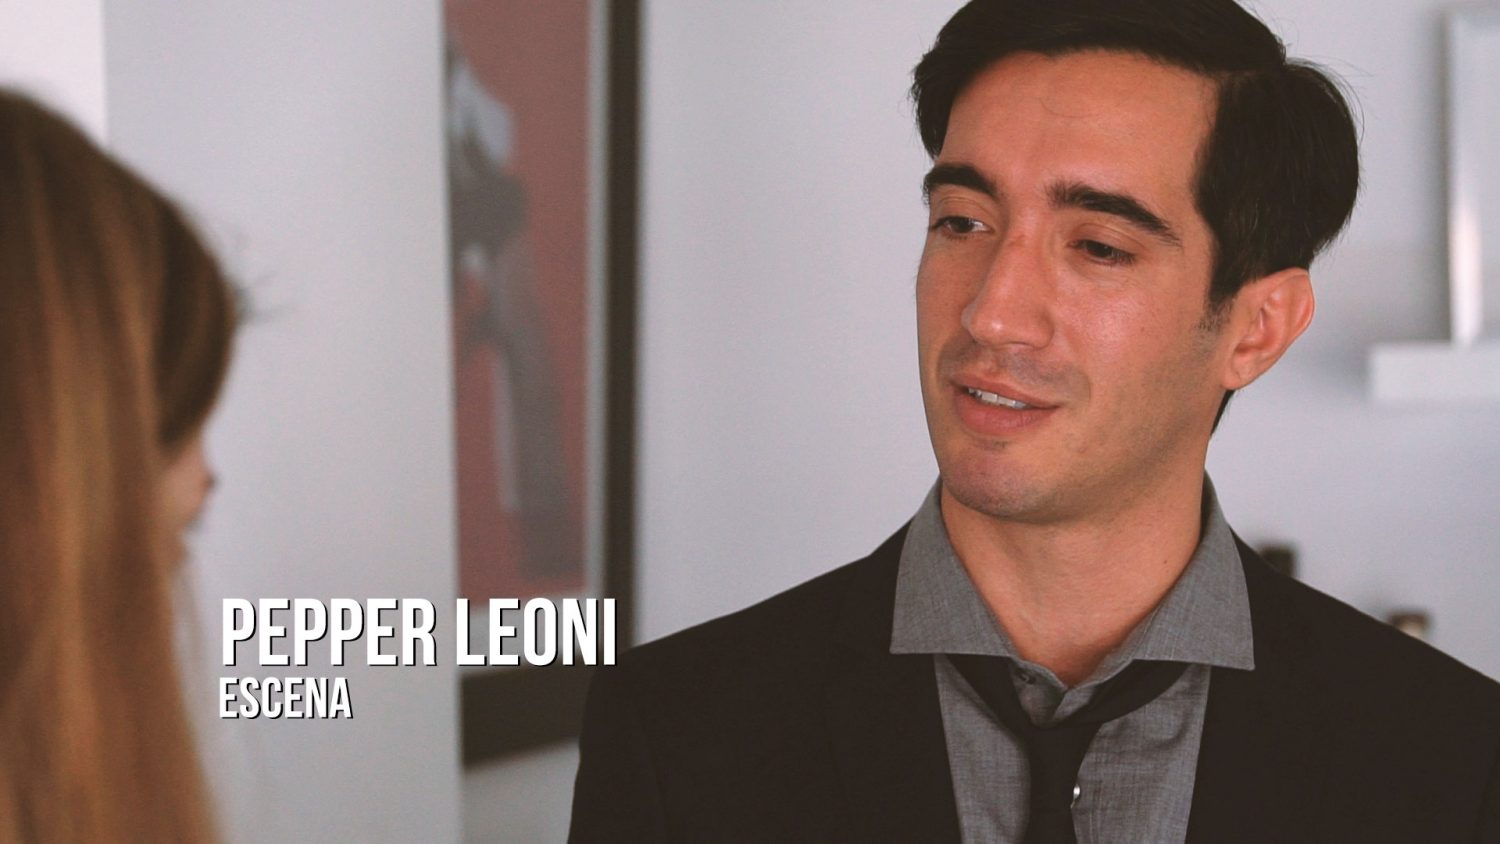 Pepper Leoni - Escena Actor